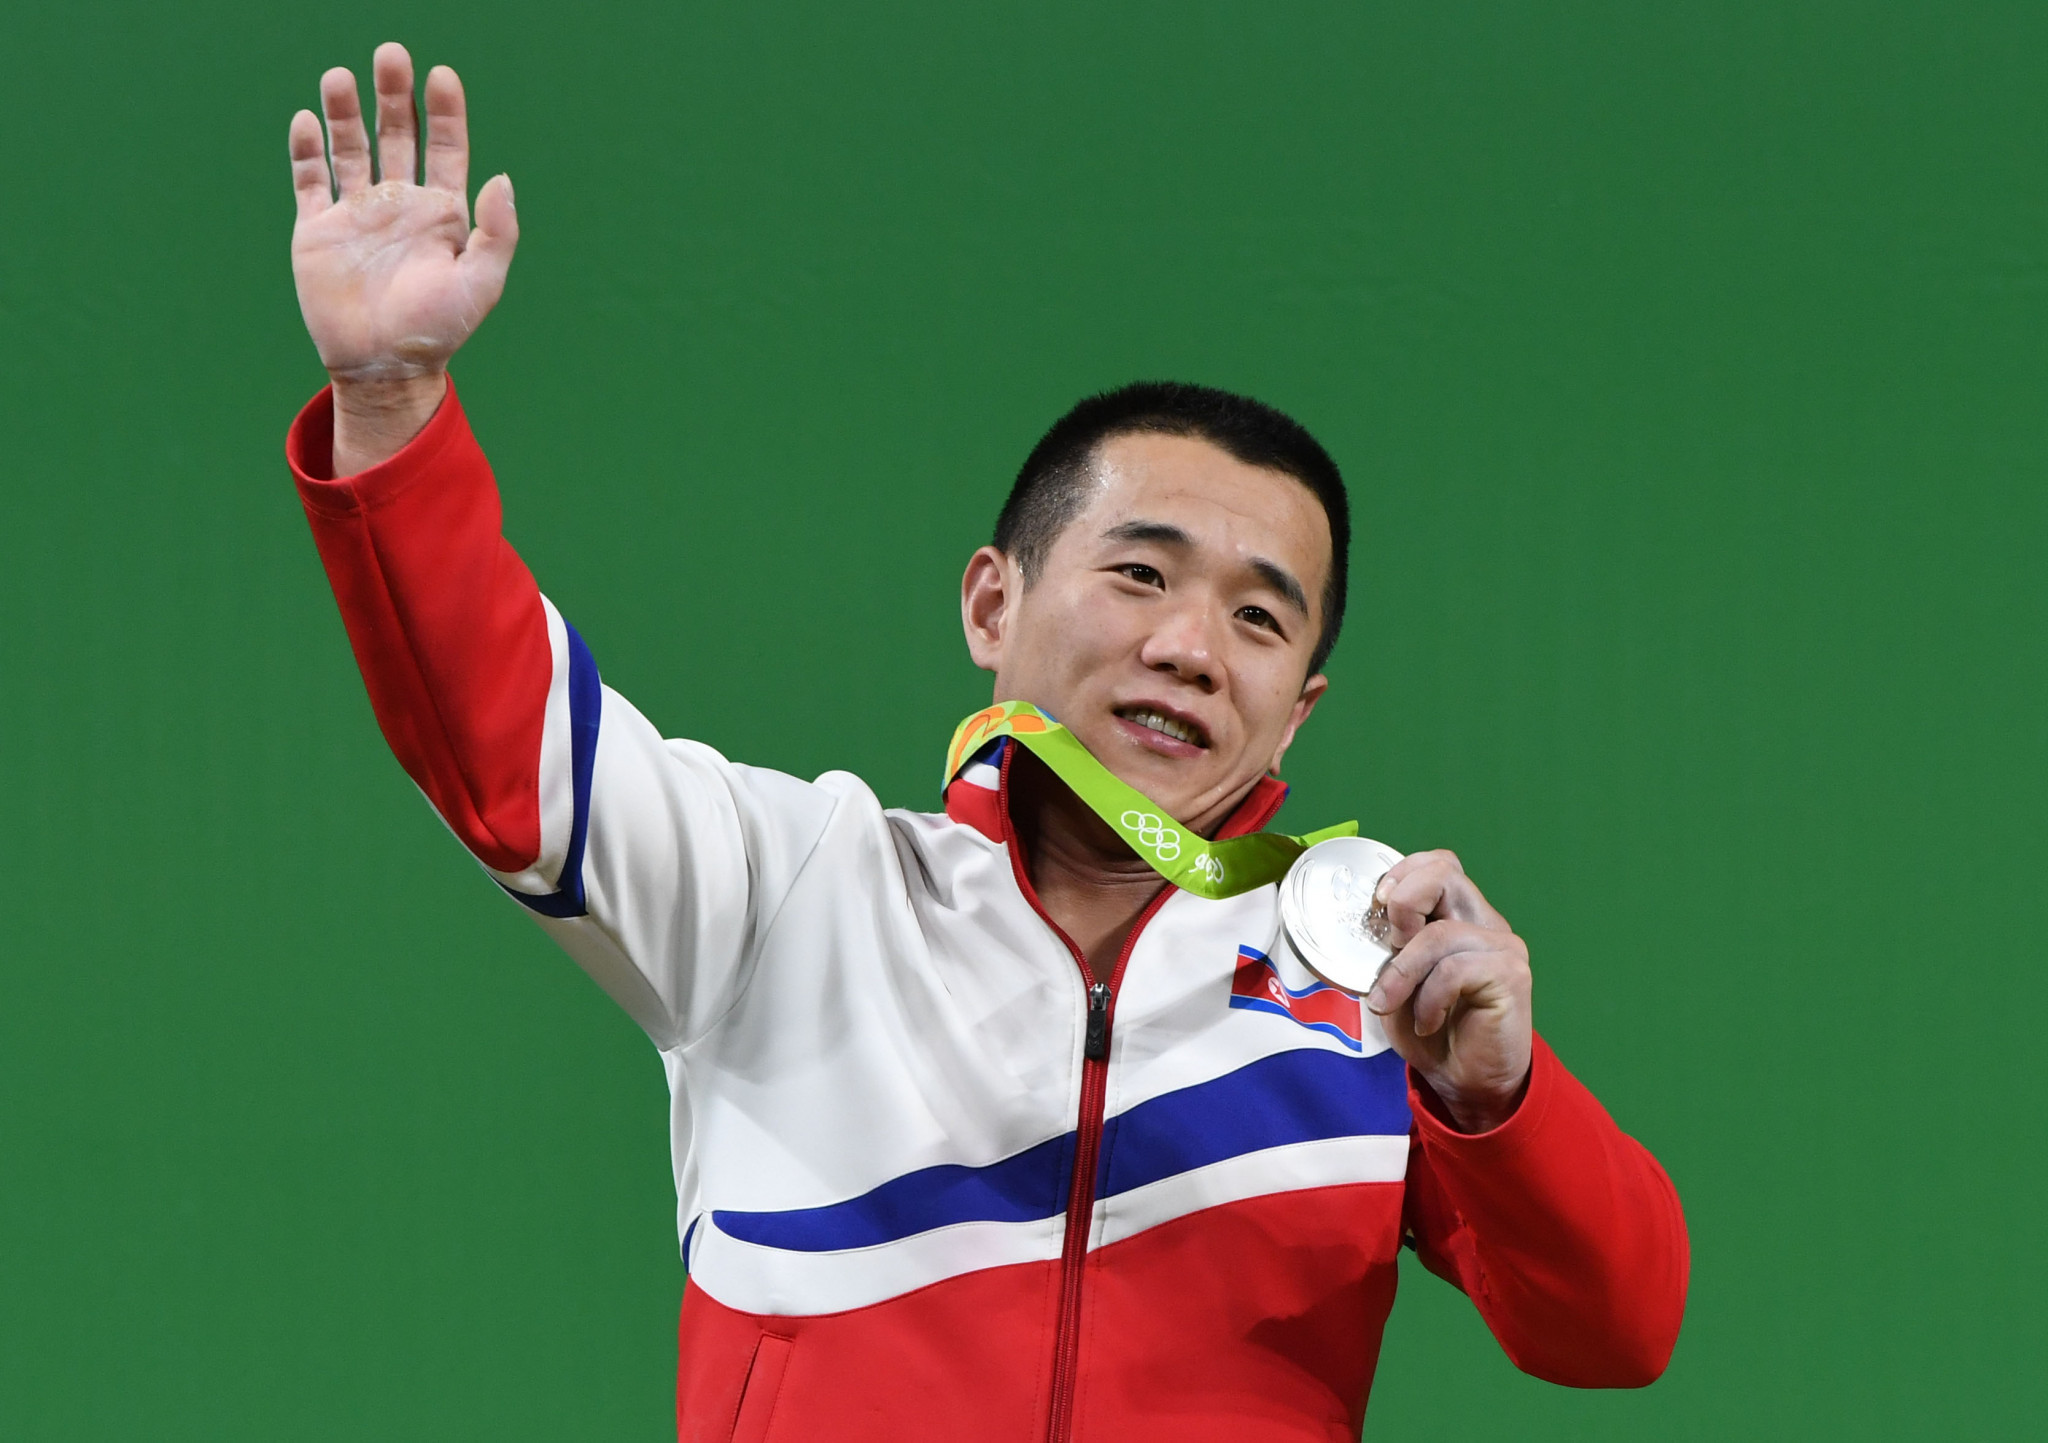 Weightlifters set to register North Korea's biggest sporting triumph - in the USA